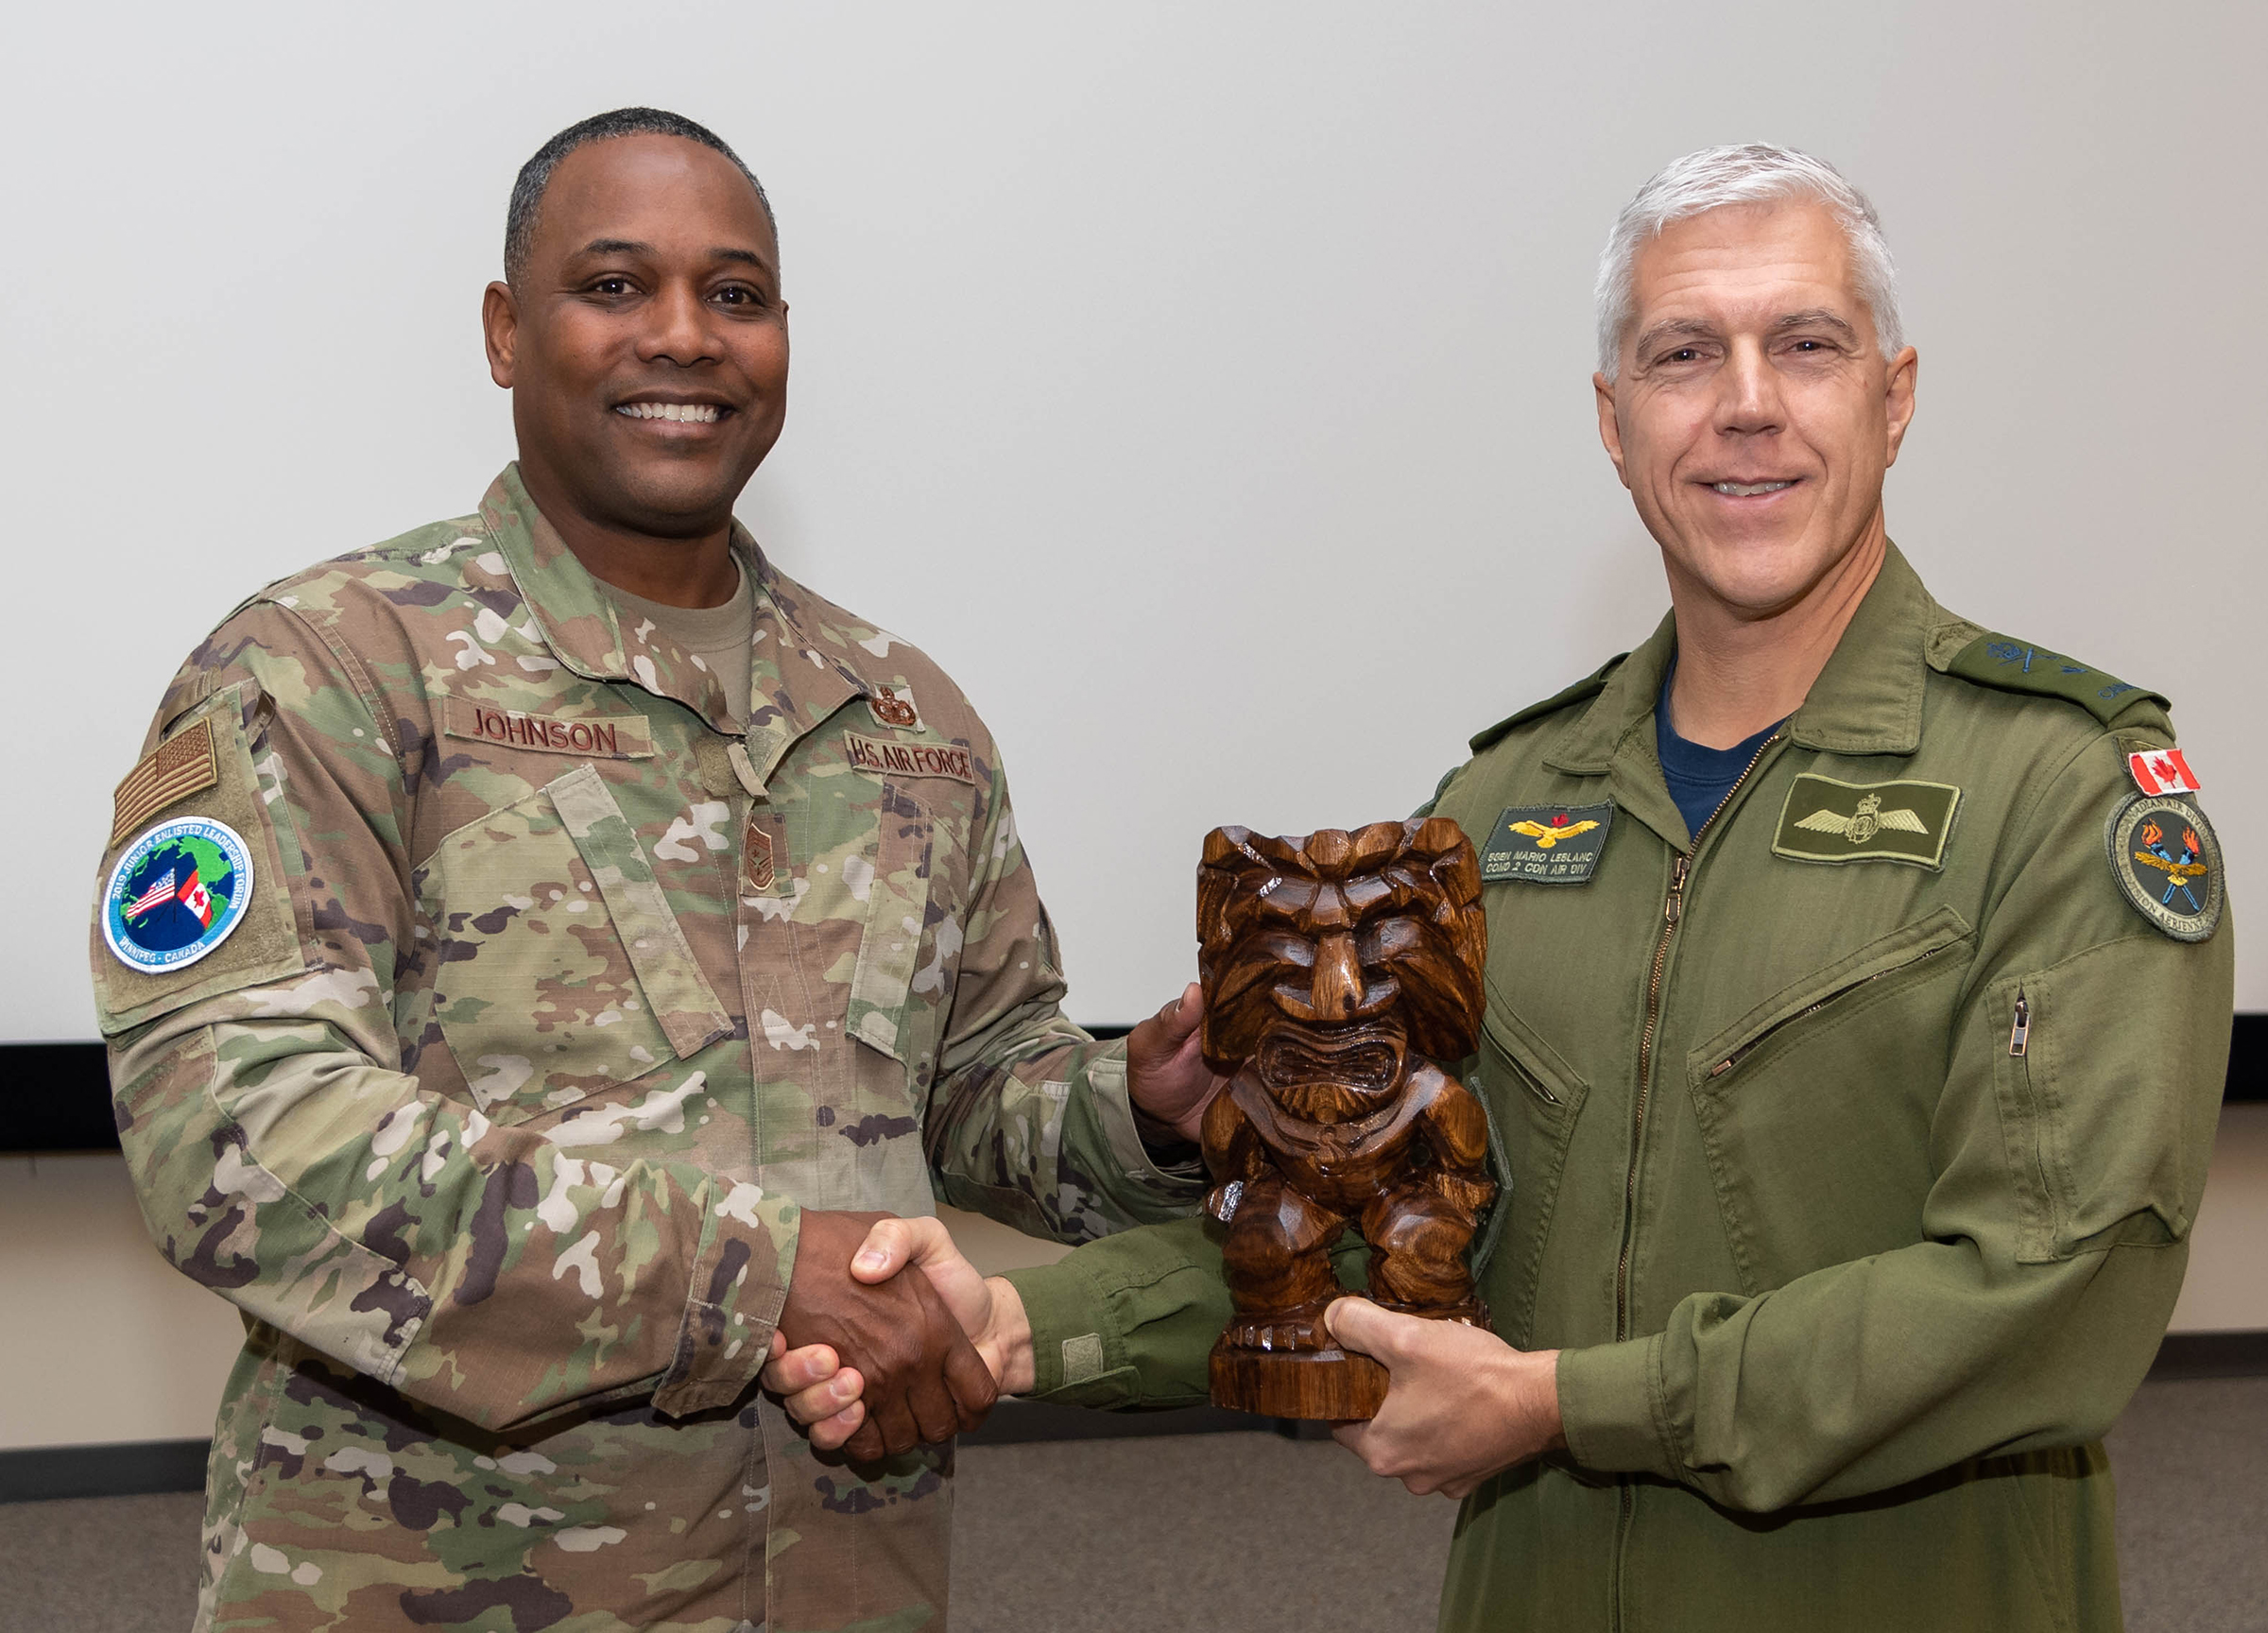 Chief Master Sergeant Anthony Johnson of the United States Air Force (left) presents a memento to Brigadier-General Mario Leblanc, commander of 2 Canadian Air Division, during the Junior Enlisted Leadership Forum held at 17 Wing Winnipeg, Manitoba, from October 21 to 25, 2019. PHOTO: Corporal Brian Lindgren, WG2019-0525-013